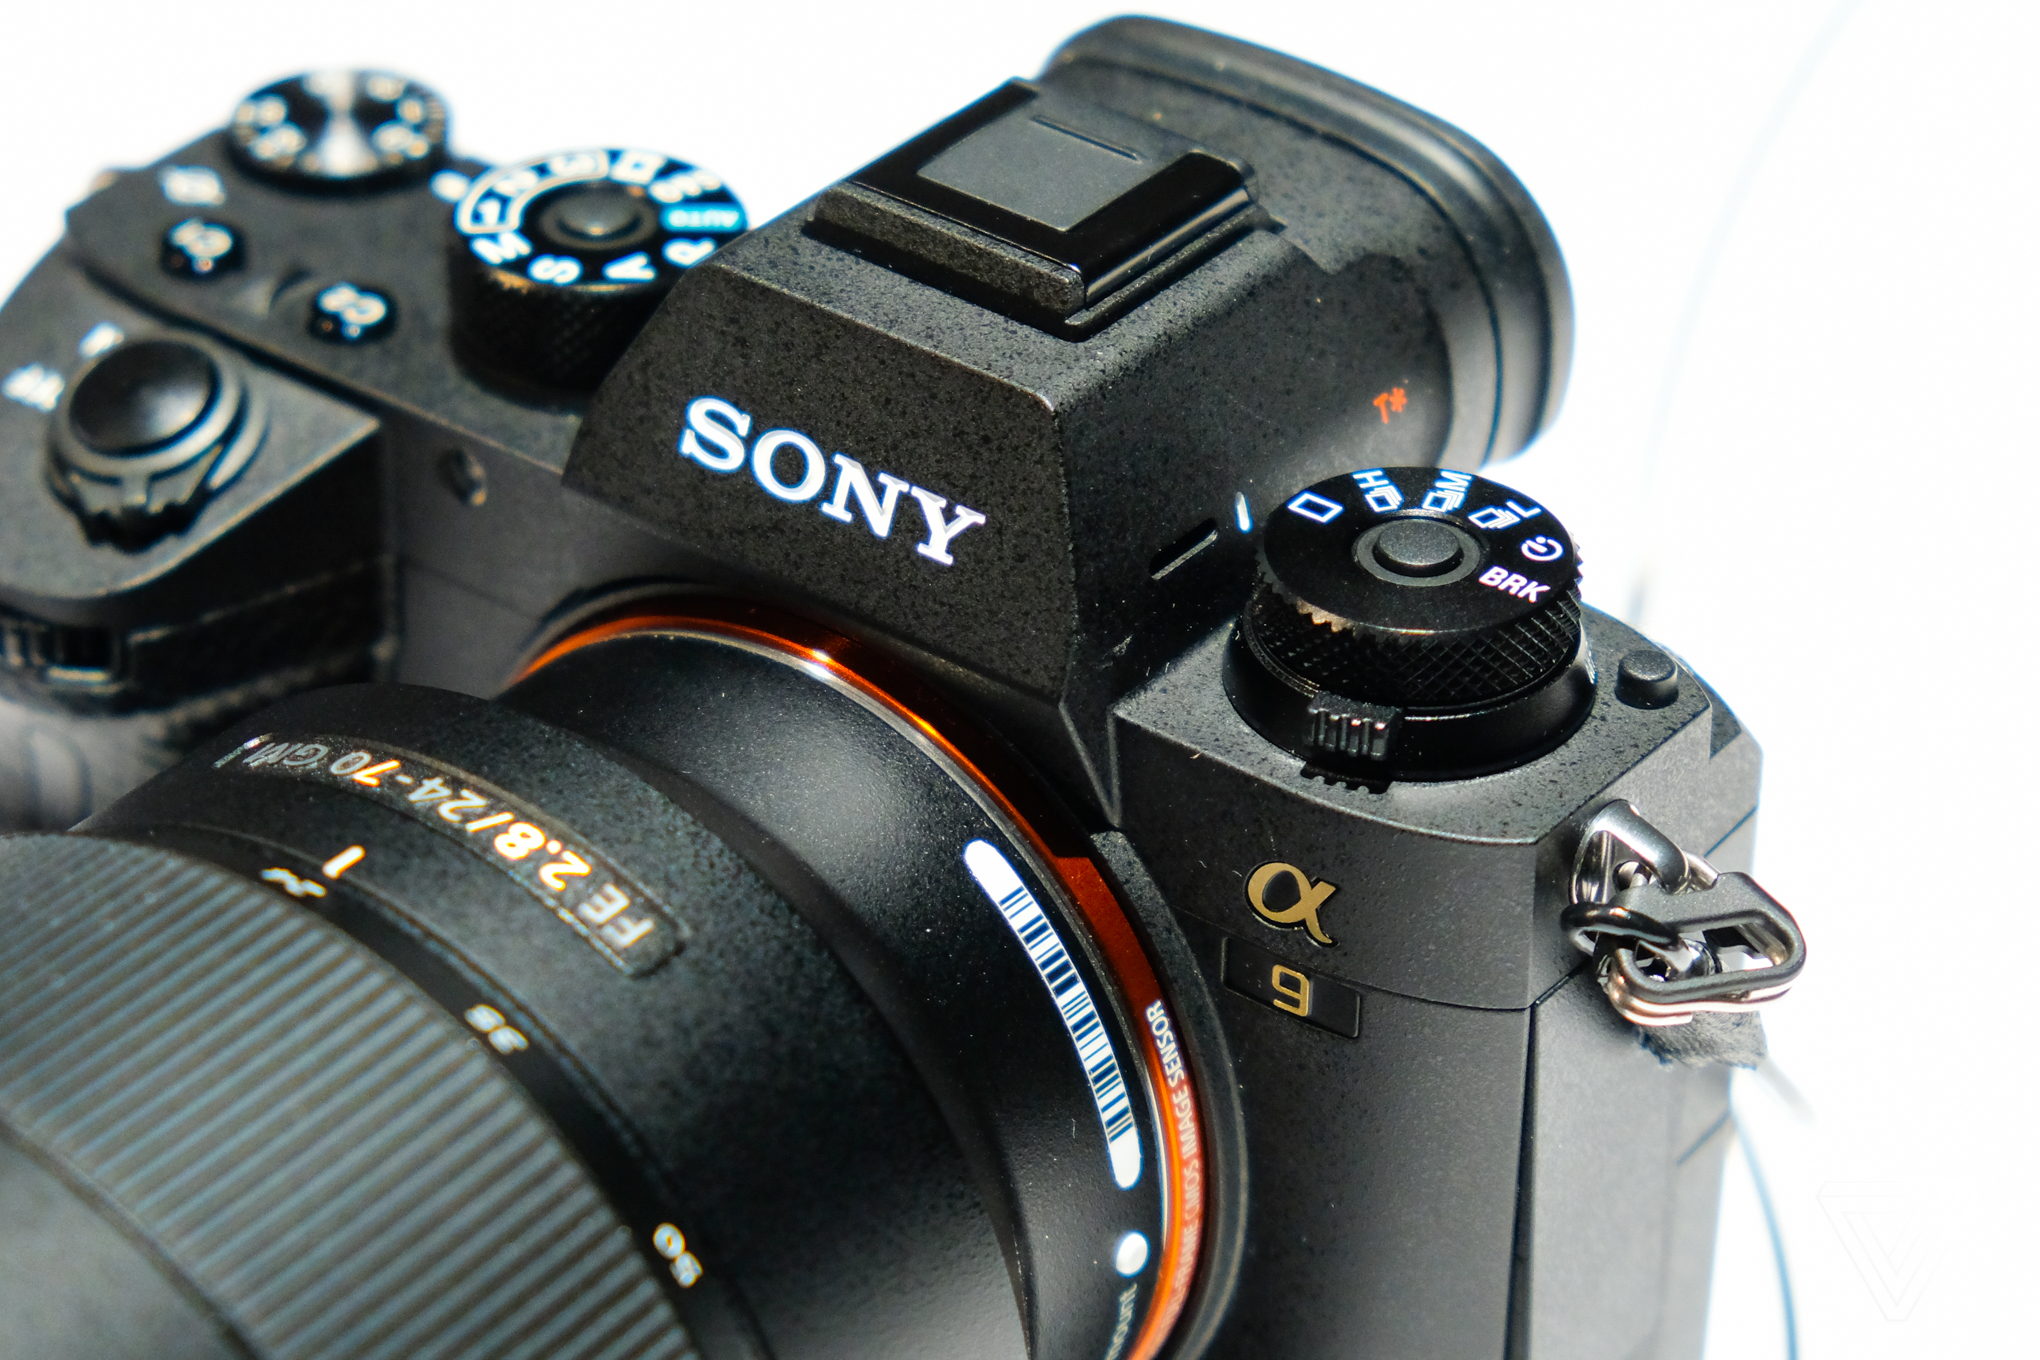 Sony\'s new A9 camera is a full-frame mirrorless with ludicrous speed ...